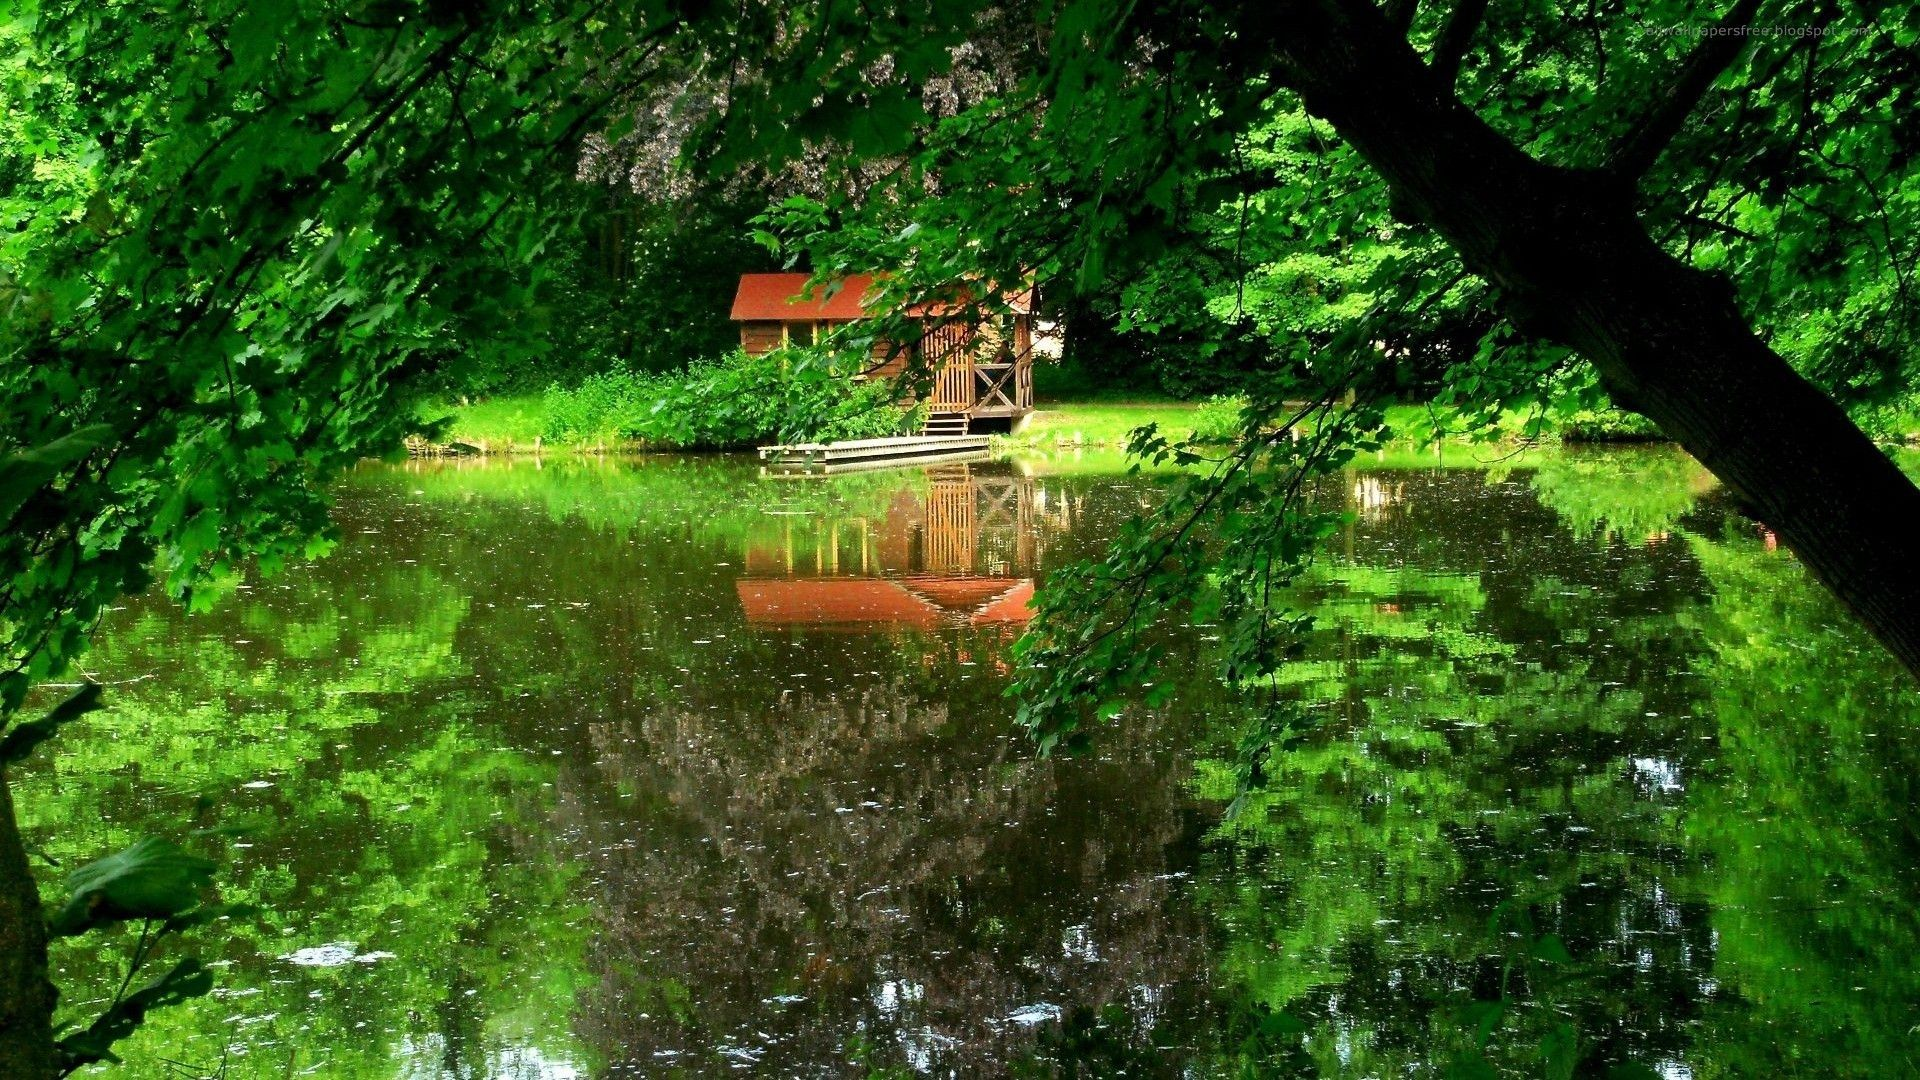 Nature Water Wallpapers Hd Pictures Download Jungle Wallpaper Nature Wallpaper Red House